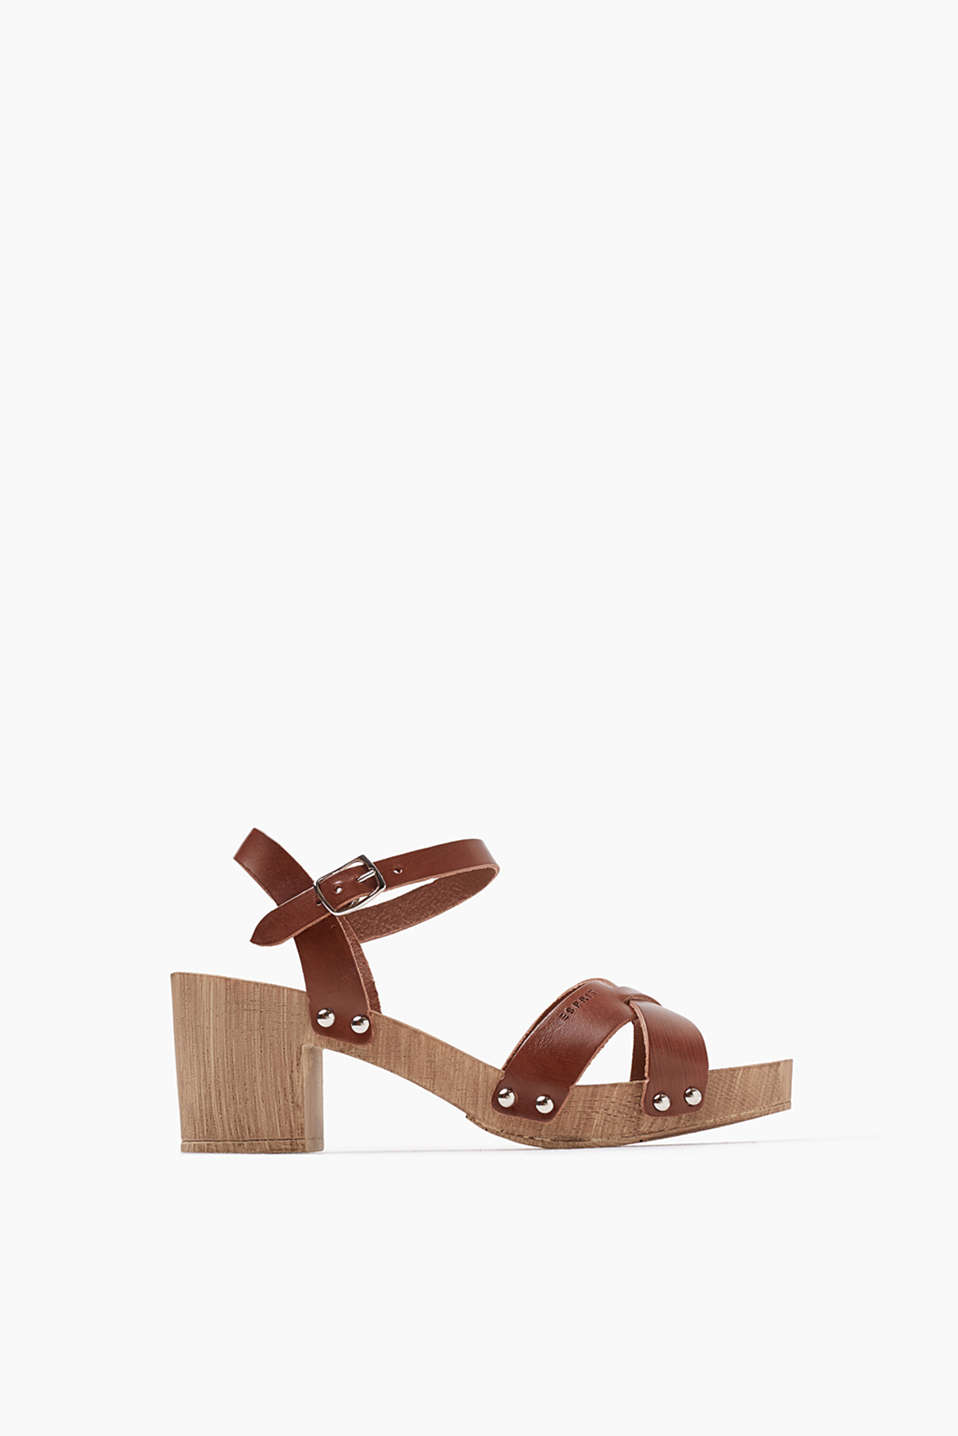 Clog sandals with ankle straps and a wood-effect heel